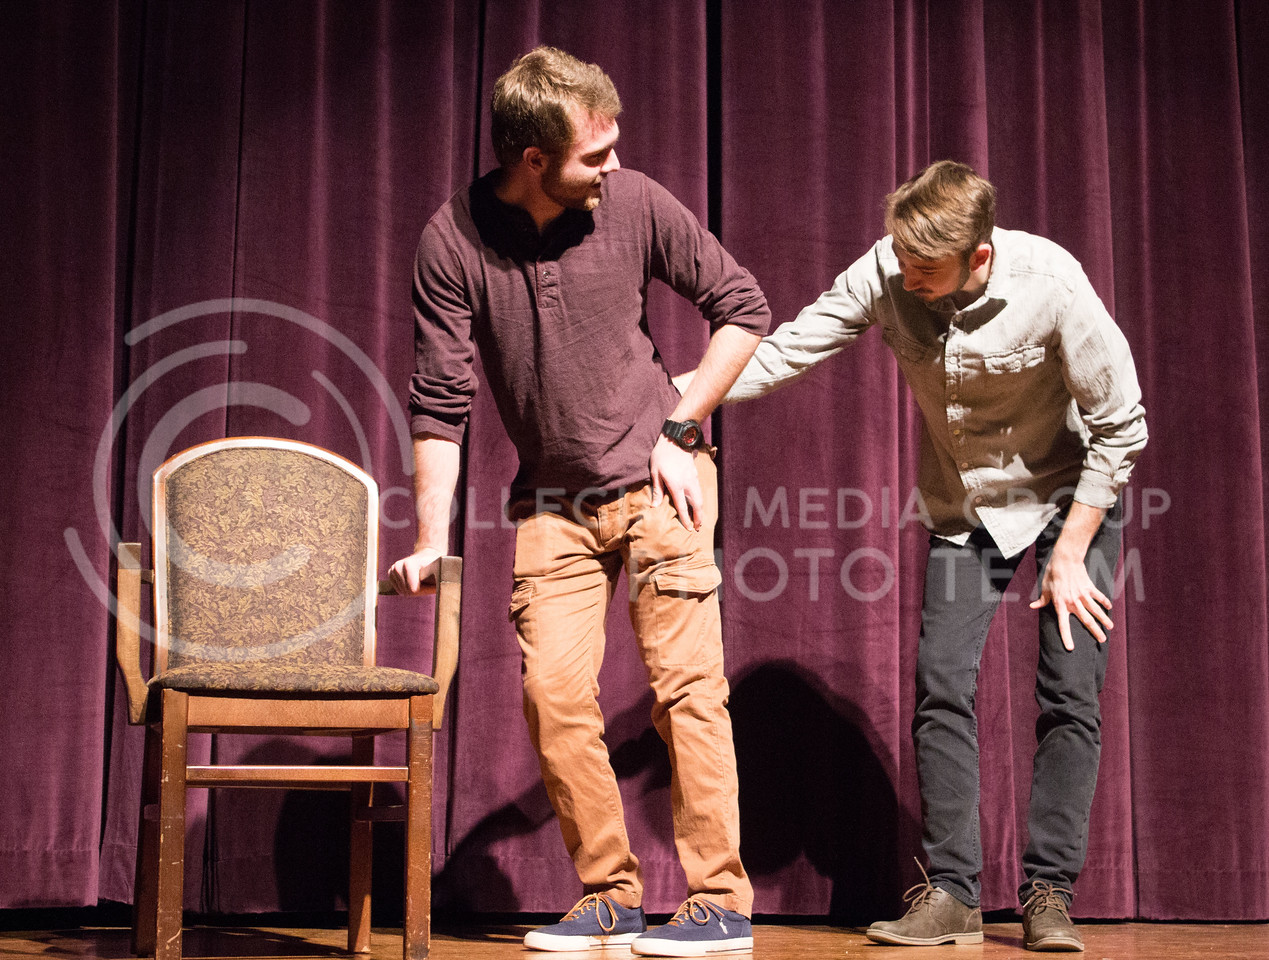 Dewey Molenda, senior in statistics, and Ryan Woods, senior in fine arts, perform at On The Spot Improv's first performance of the year in Forum Hall on Jan. 24, 2017. (Regan Tokos | The Collegian)